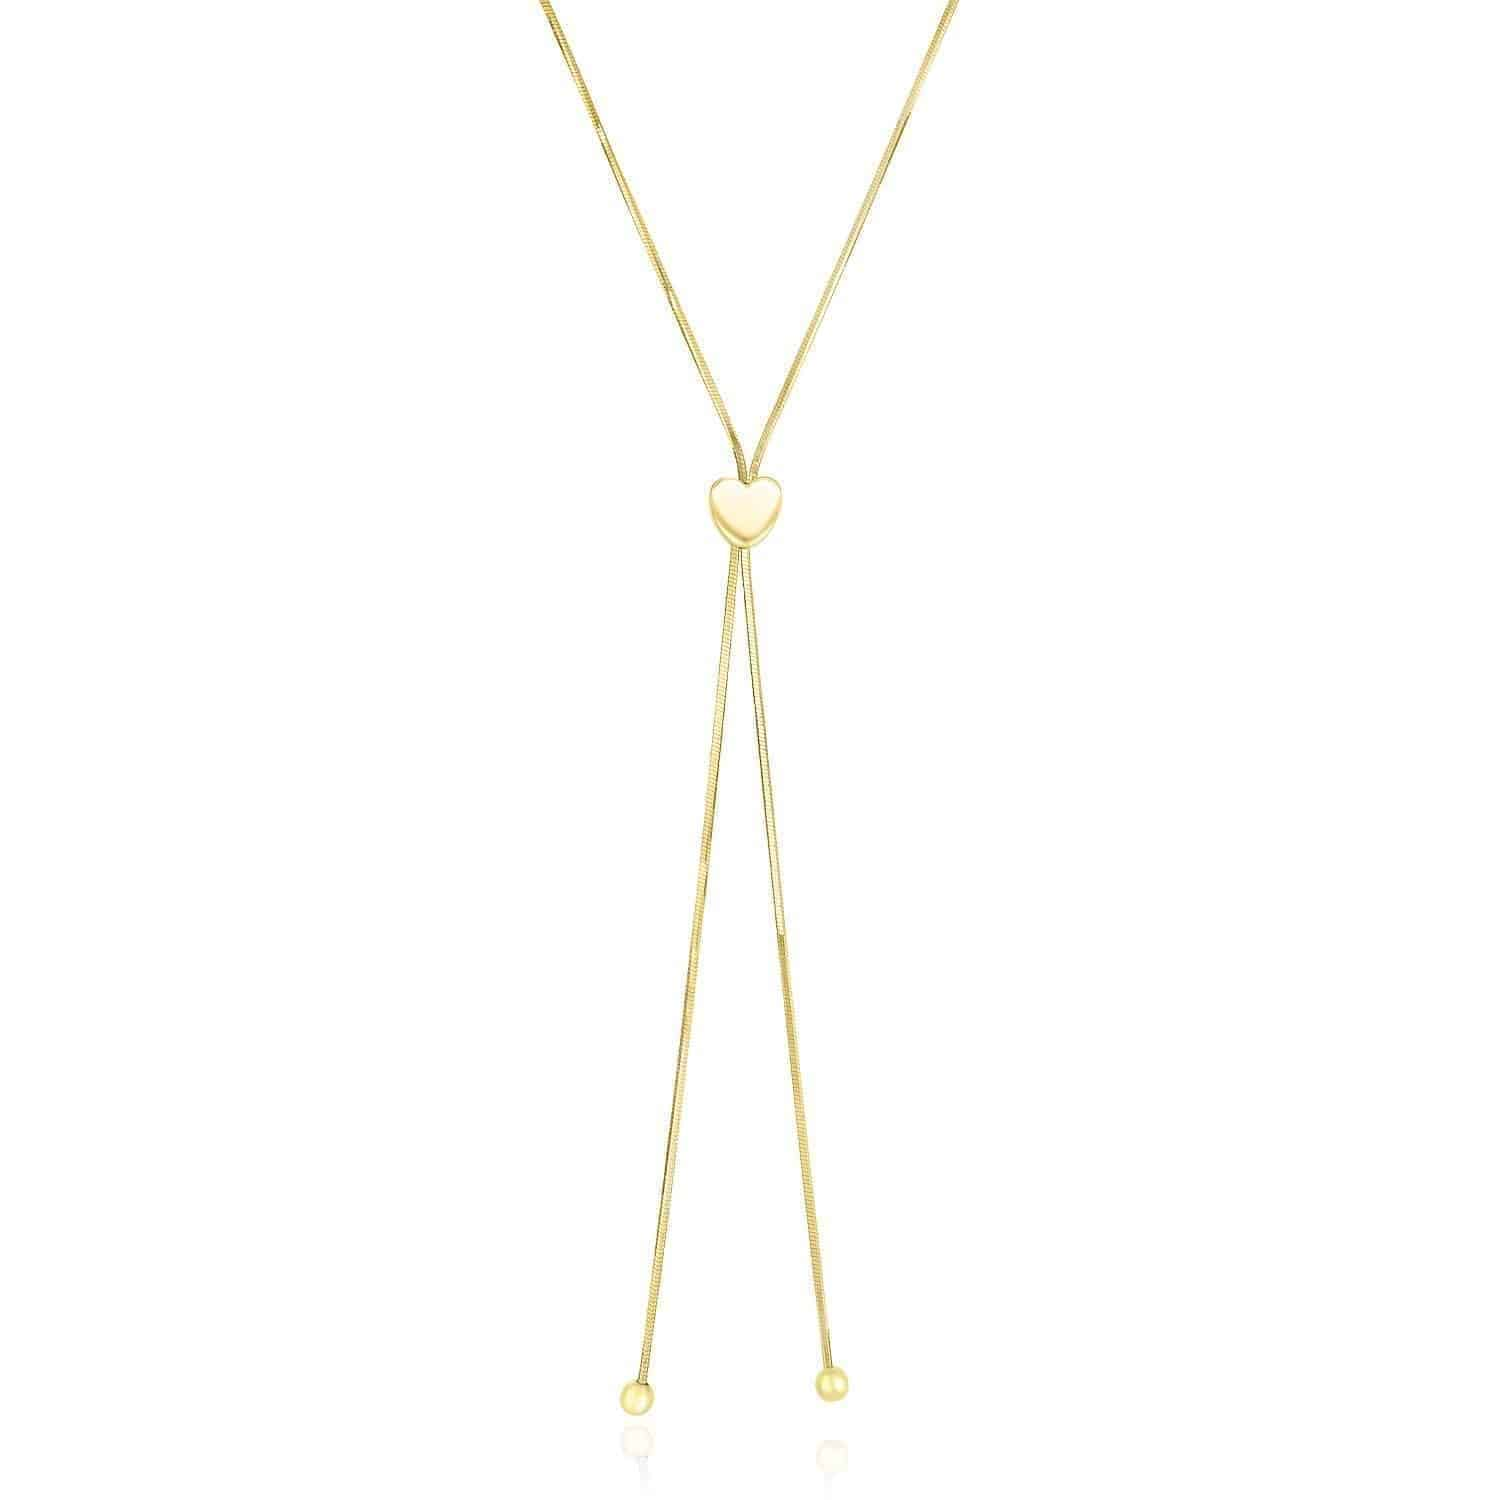 14k Yellow Gold Adjustable Heart Style Lariat Necklace